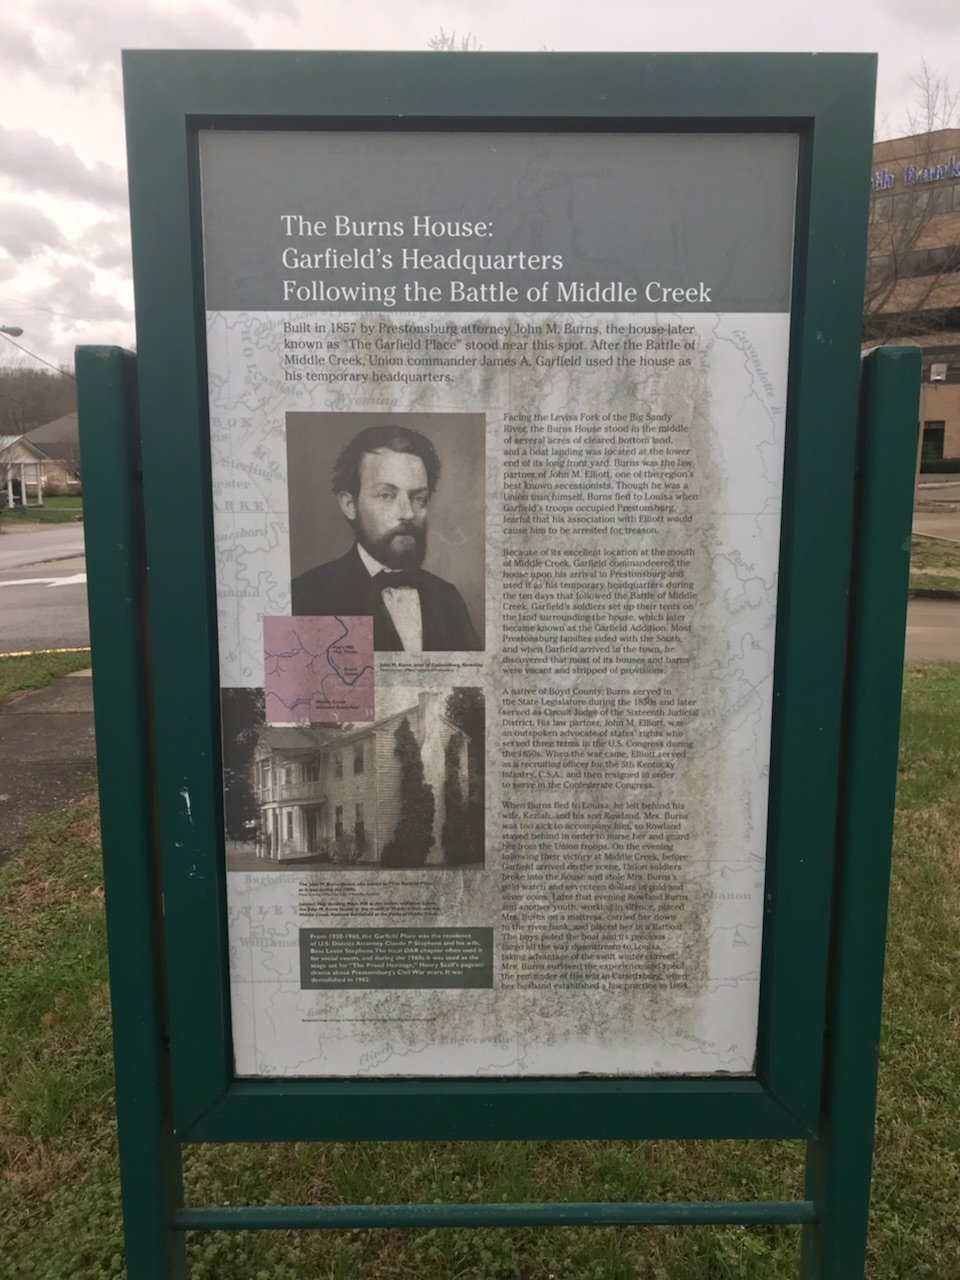 The front of the marker for The Burns House: Garfield's Headquarters Following the Battle of Middle Creek. It contains information and photos pertaining to the history of the house, including its owner John Burns.